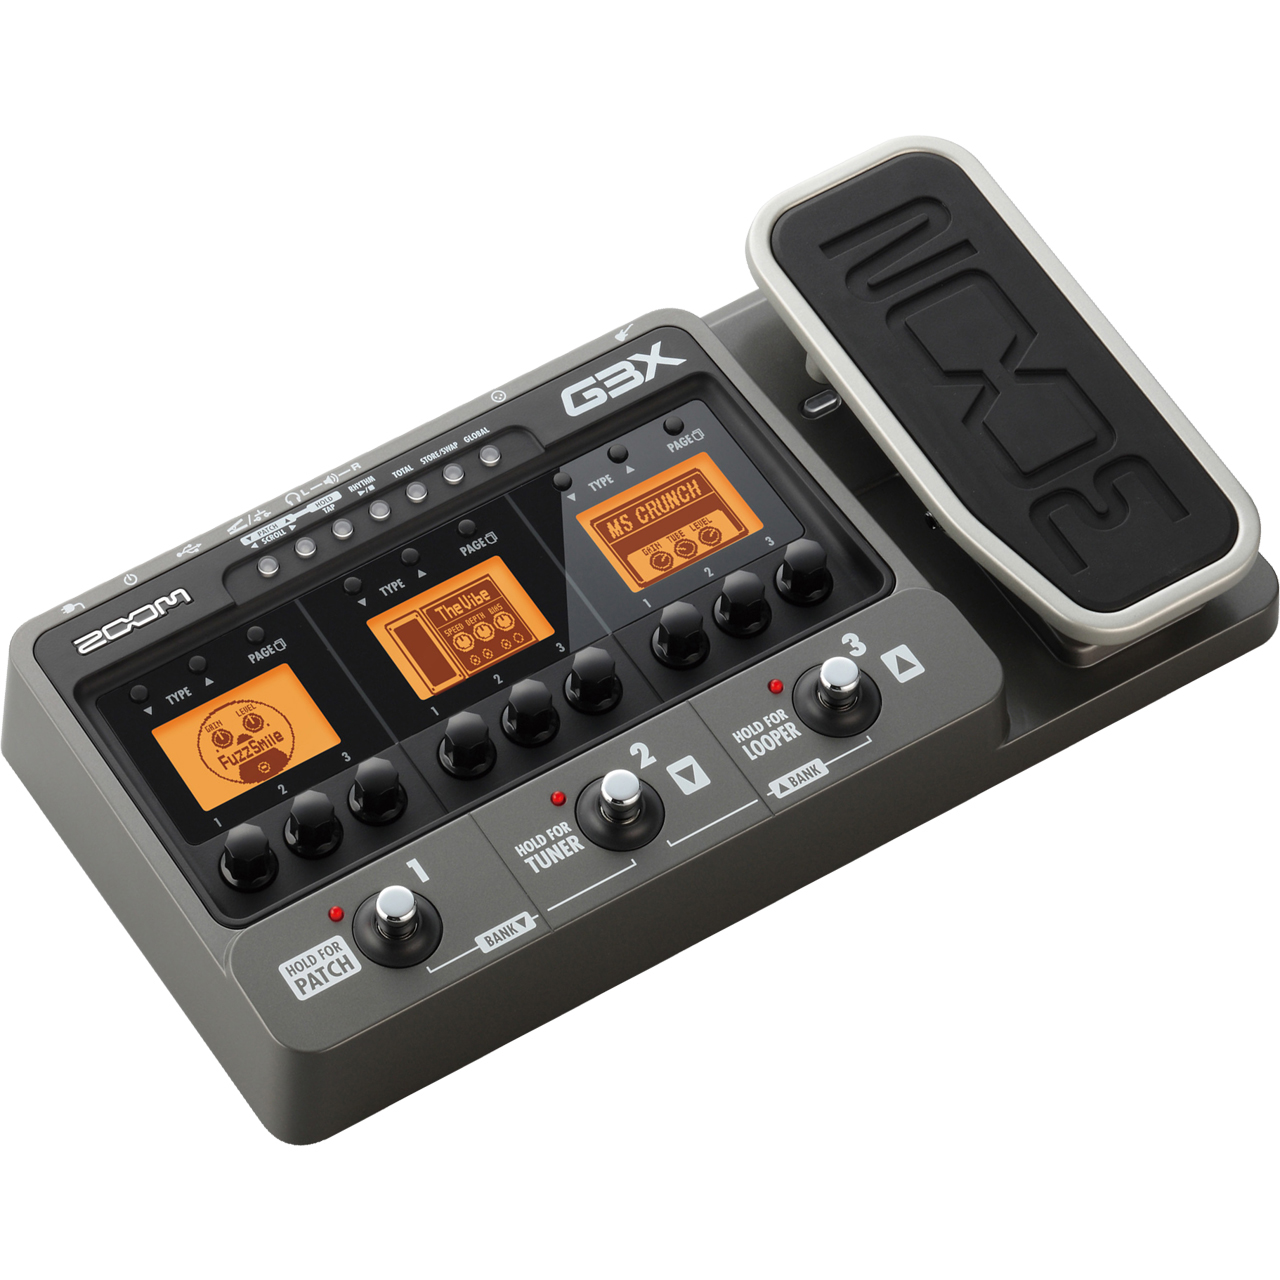 zoom g3x guitar effects effects processor. Black Bedroom Furniture Sets. Home Design Ideas